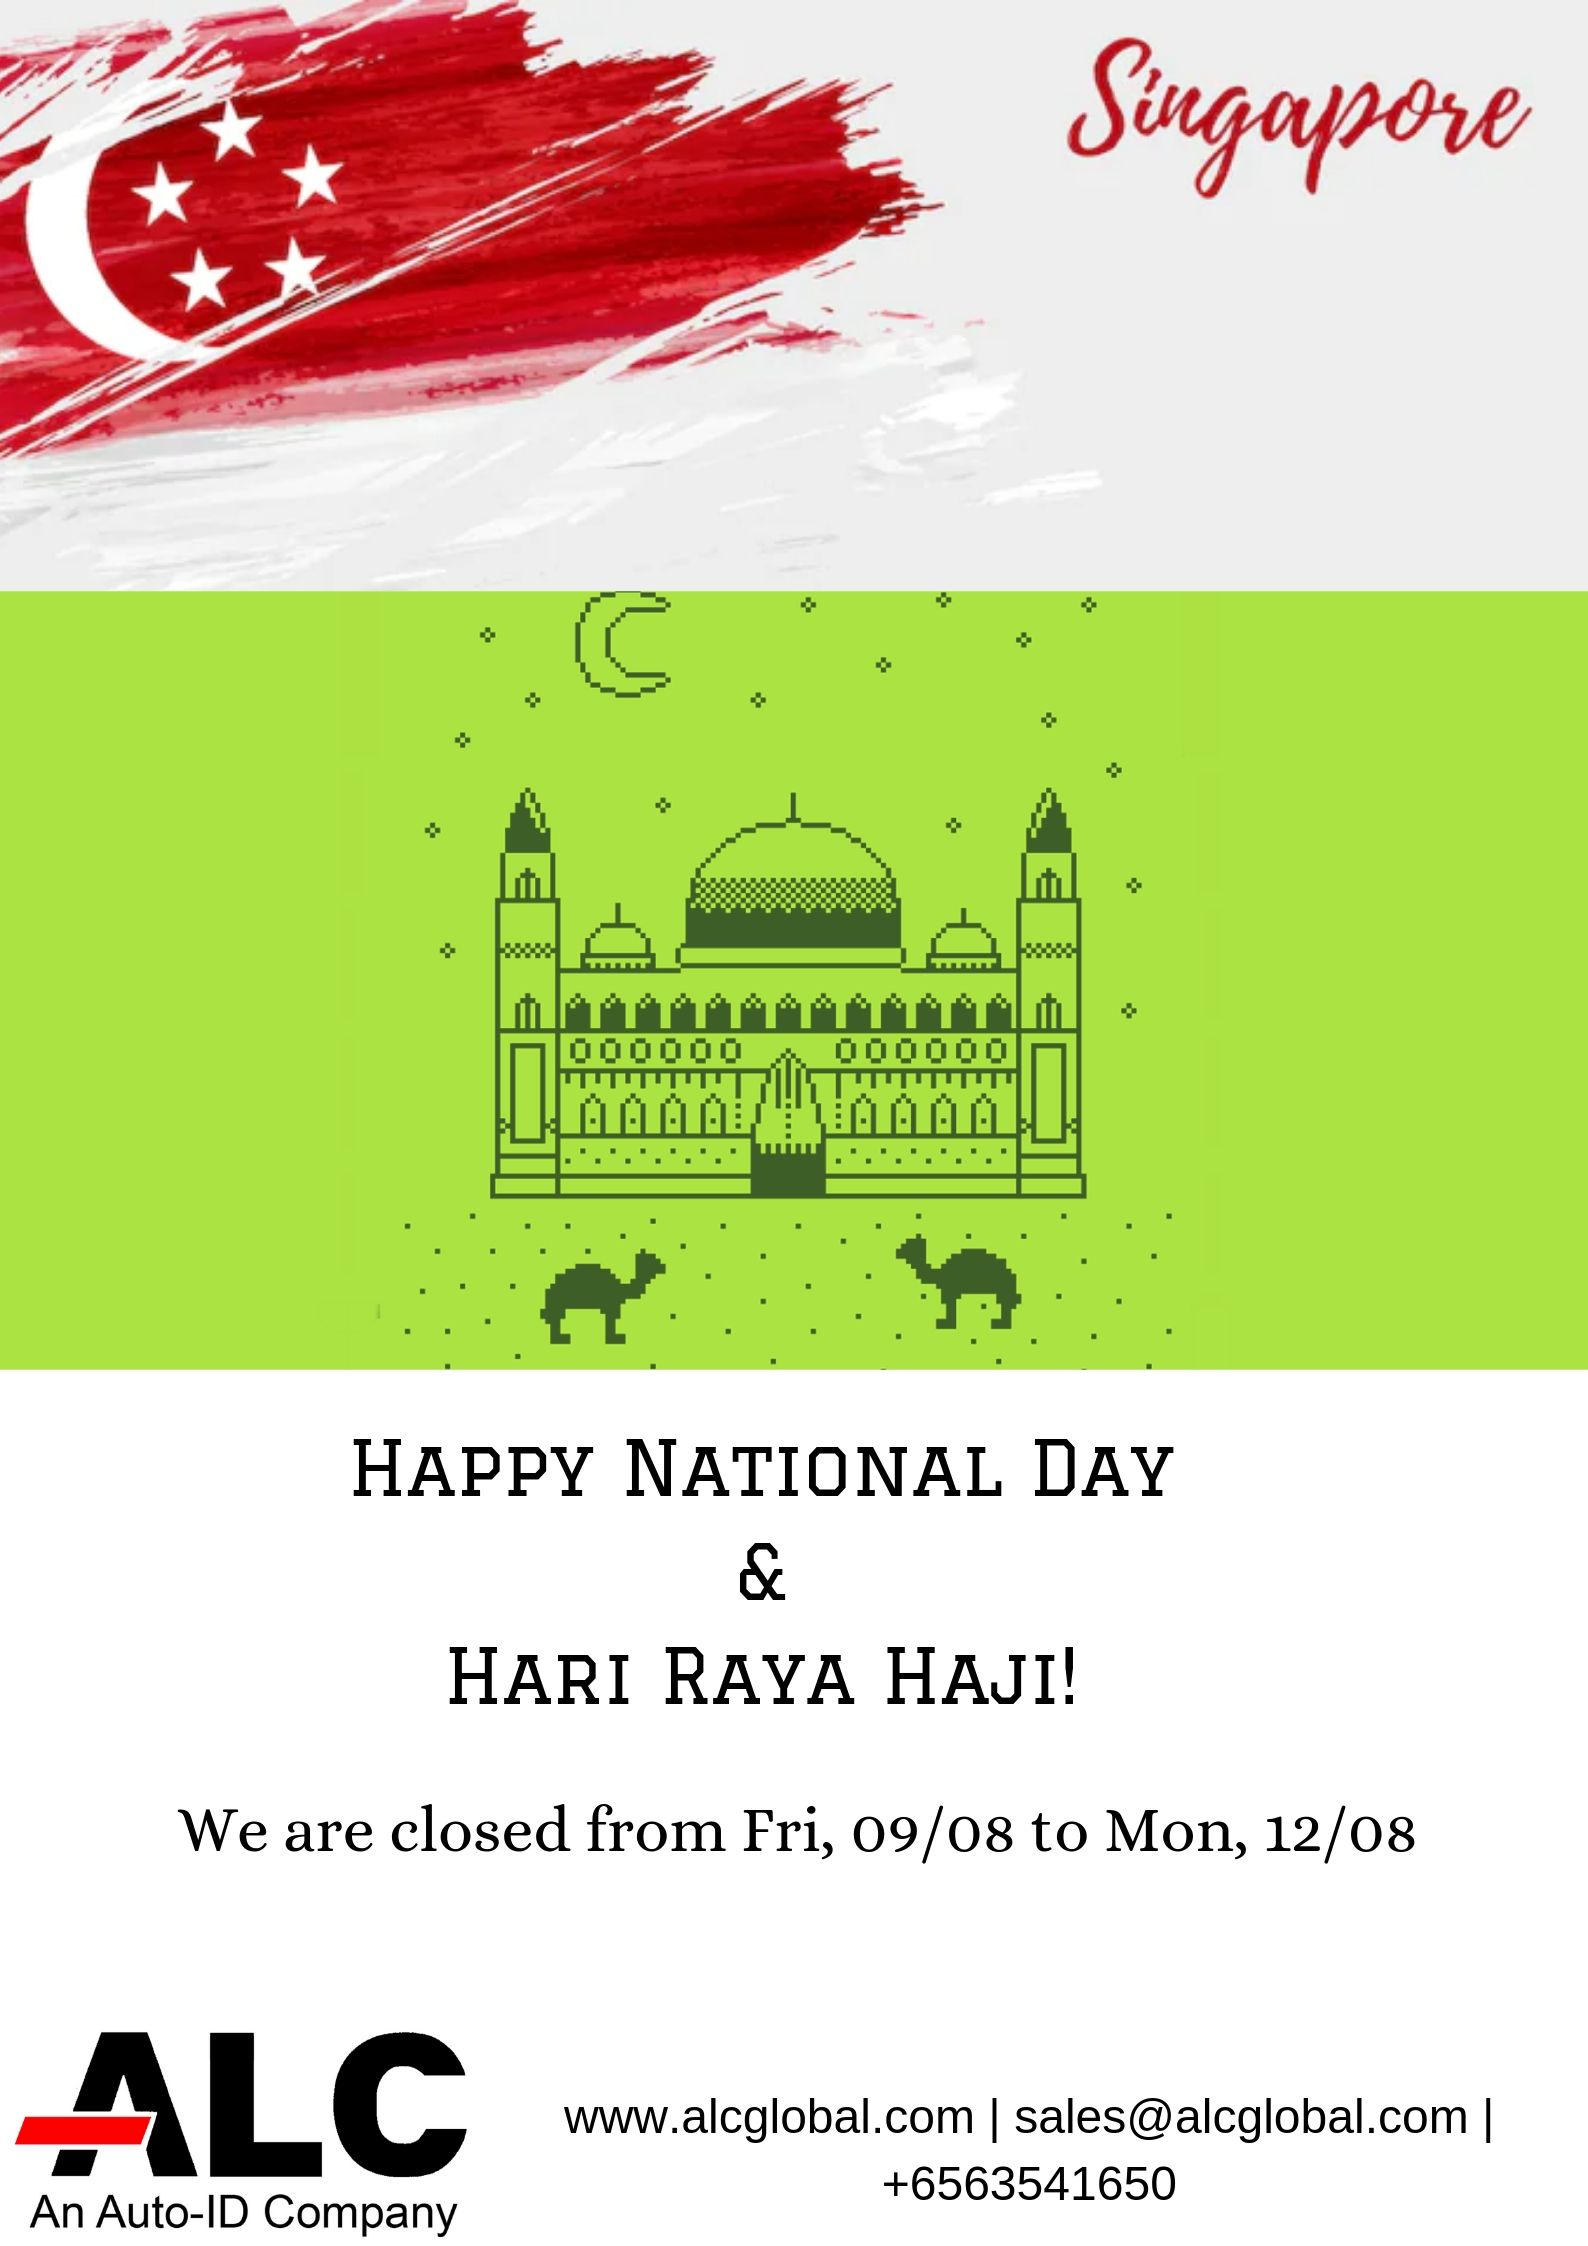 Happy National Day & Hari Raya Haji 2019